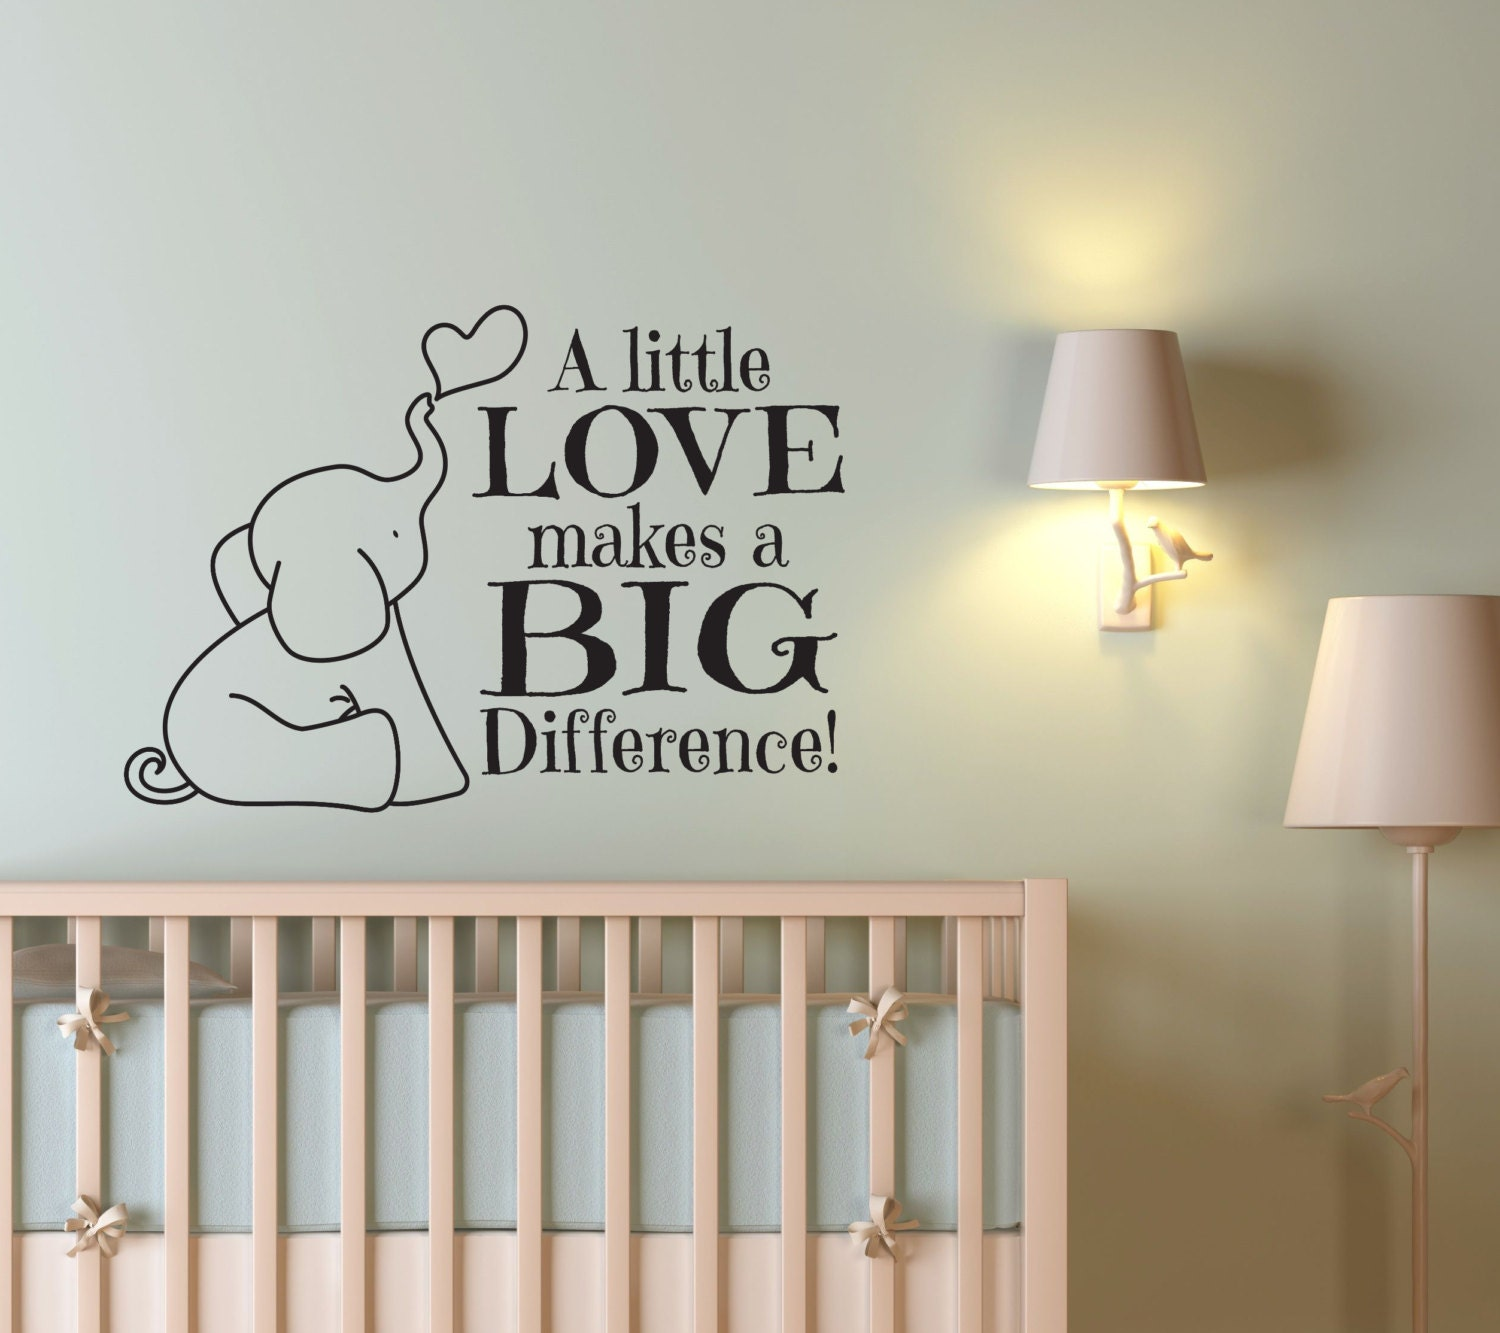 20 Beautiful Baby Boy Nursery Room Design Ideas Full Of: Nursery Decor Elephant Nursery Decor Elephant Wall Decal